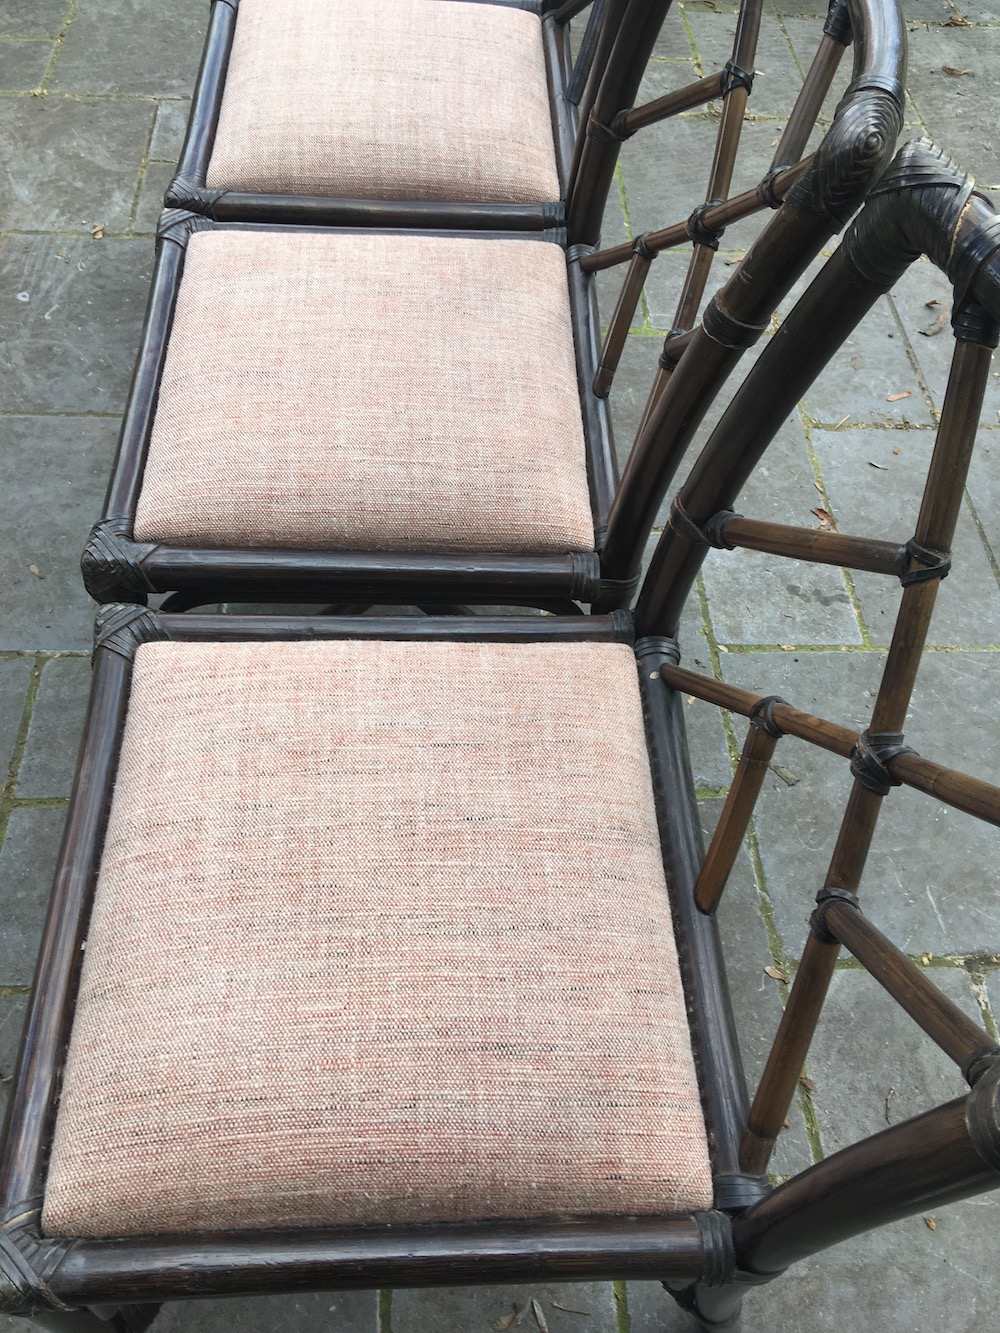 vintage chairs, bamboo, bamboo chairs, chaises bambou, chaises vintage, charming chairs, kitchen chairs, kitchen decoration, dining chairs, dining room, bamboo and leather, bambou et cuir, chaises à diner, série de chaises, set of chairs, wooden chairs, chaises bois, mobilier vintage, vintage design, design chairs, mid modern, mid modern furniture